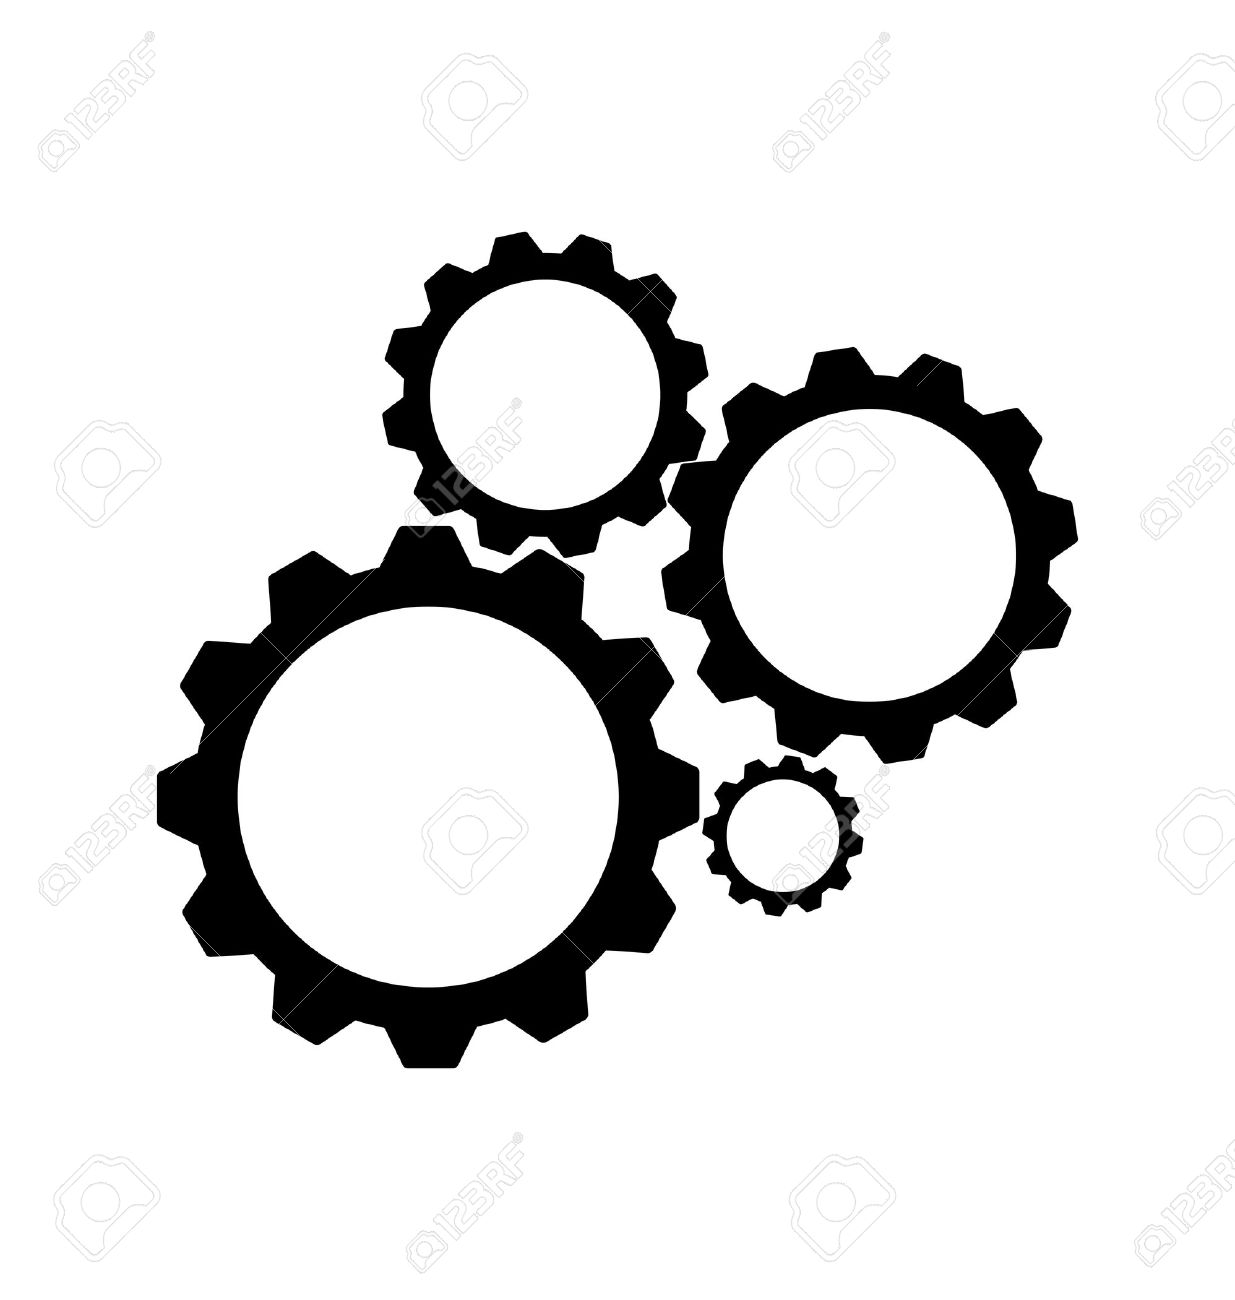 image relating to Gears Printable known as Gears Clipart Cost-free down load perfect Gears Clipart upon